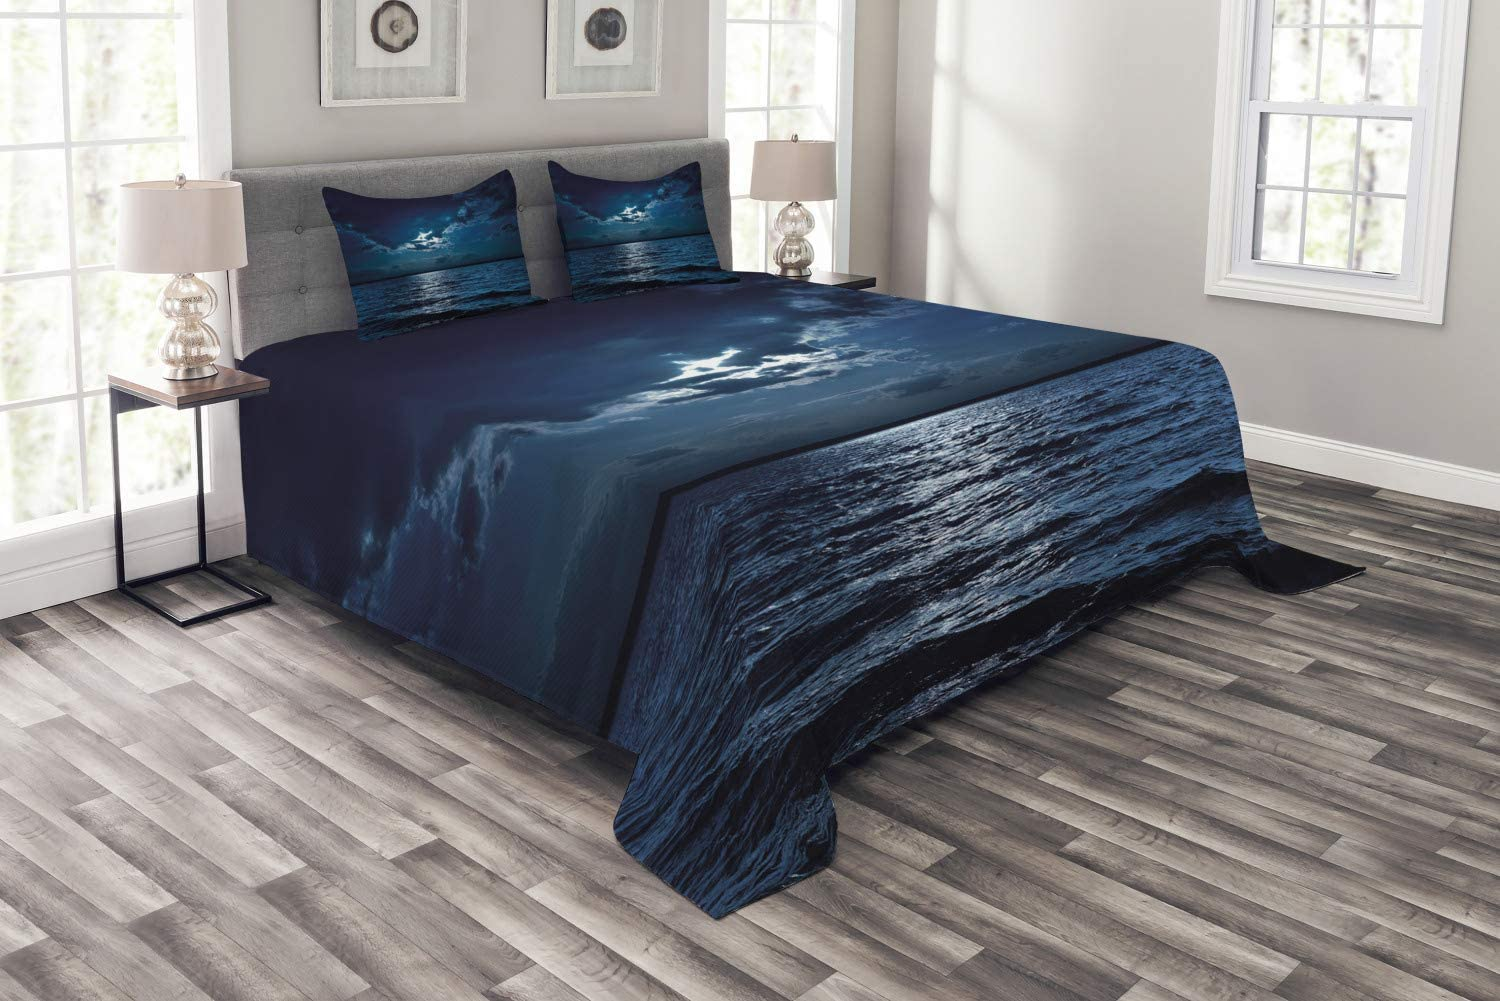 Ambesonne Night Bedspread, Majestic Dramatic Sky Clouds and Full Moon Over Seascape Calm Tranquil Ocean, Decorative Quilted 3 Piece Coverlet Set with 2 Pillow Shams, Queen Size, Dark Blue